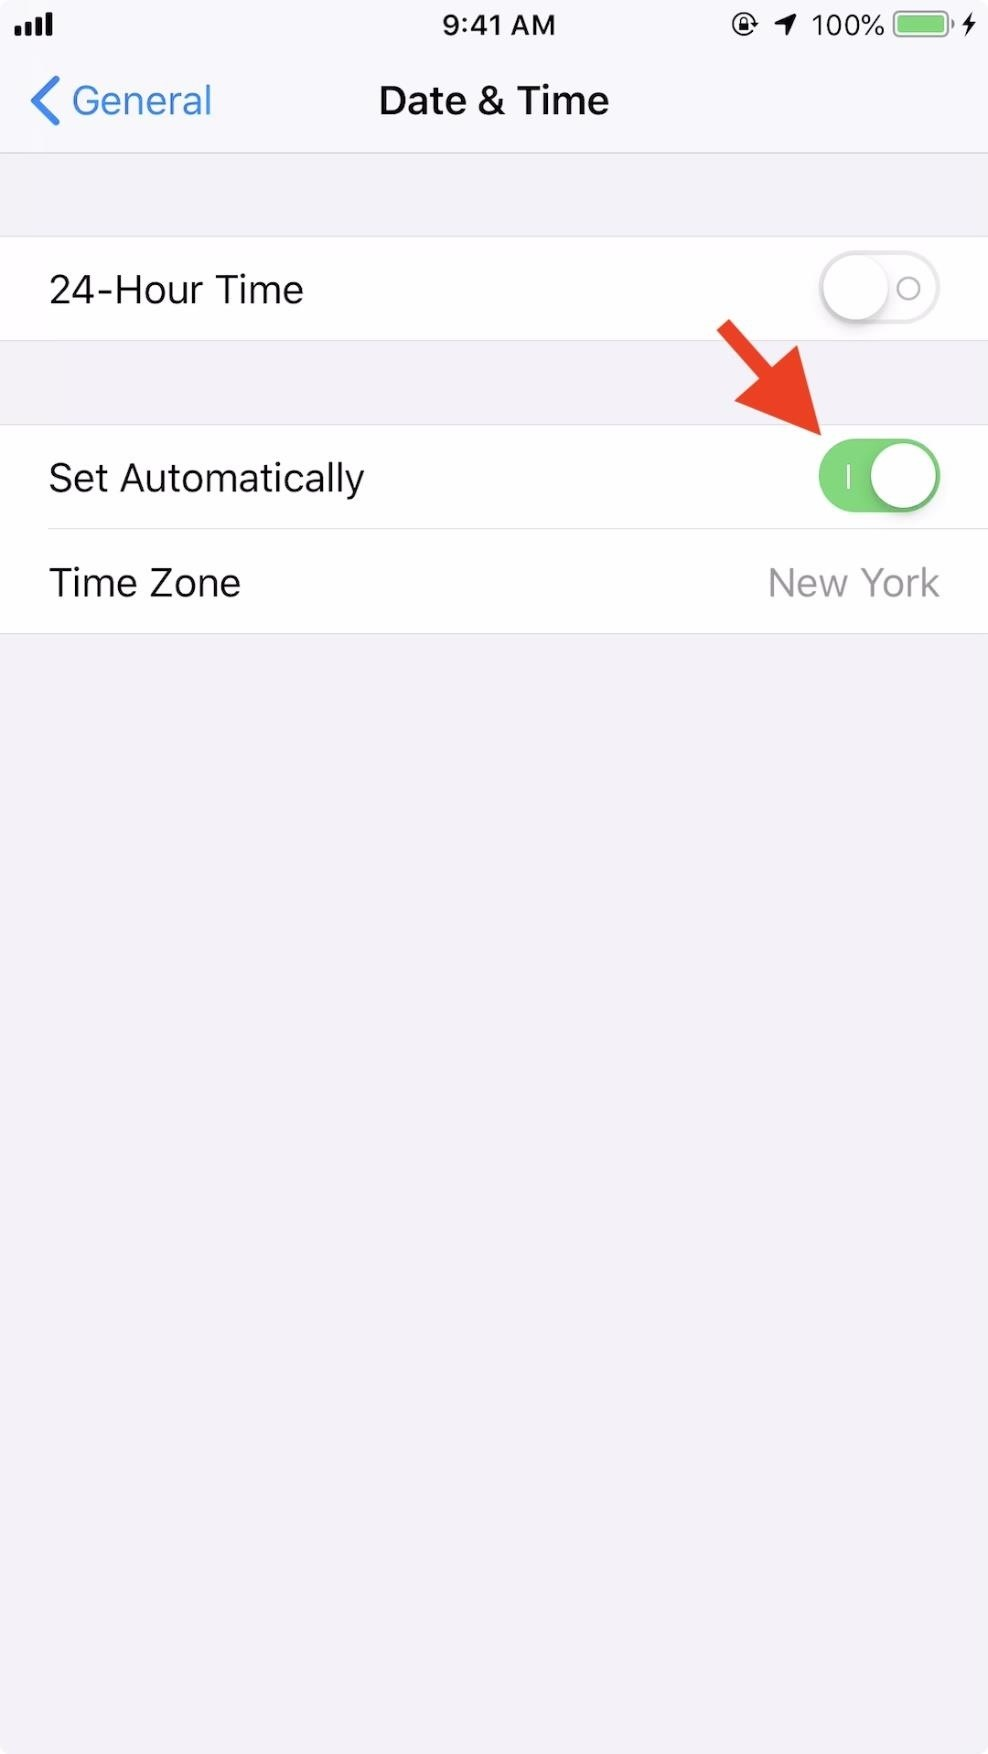 App Over 150 MB? Here's How to Download It Using Cellular Data on Your iPhone